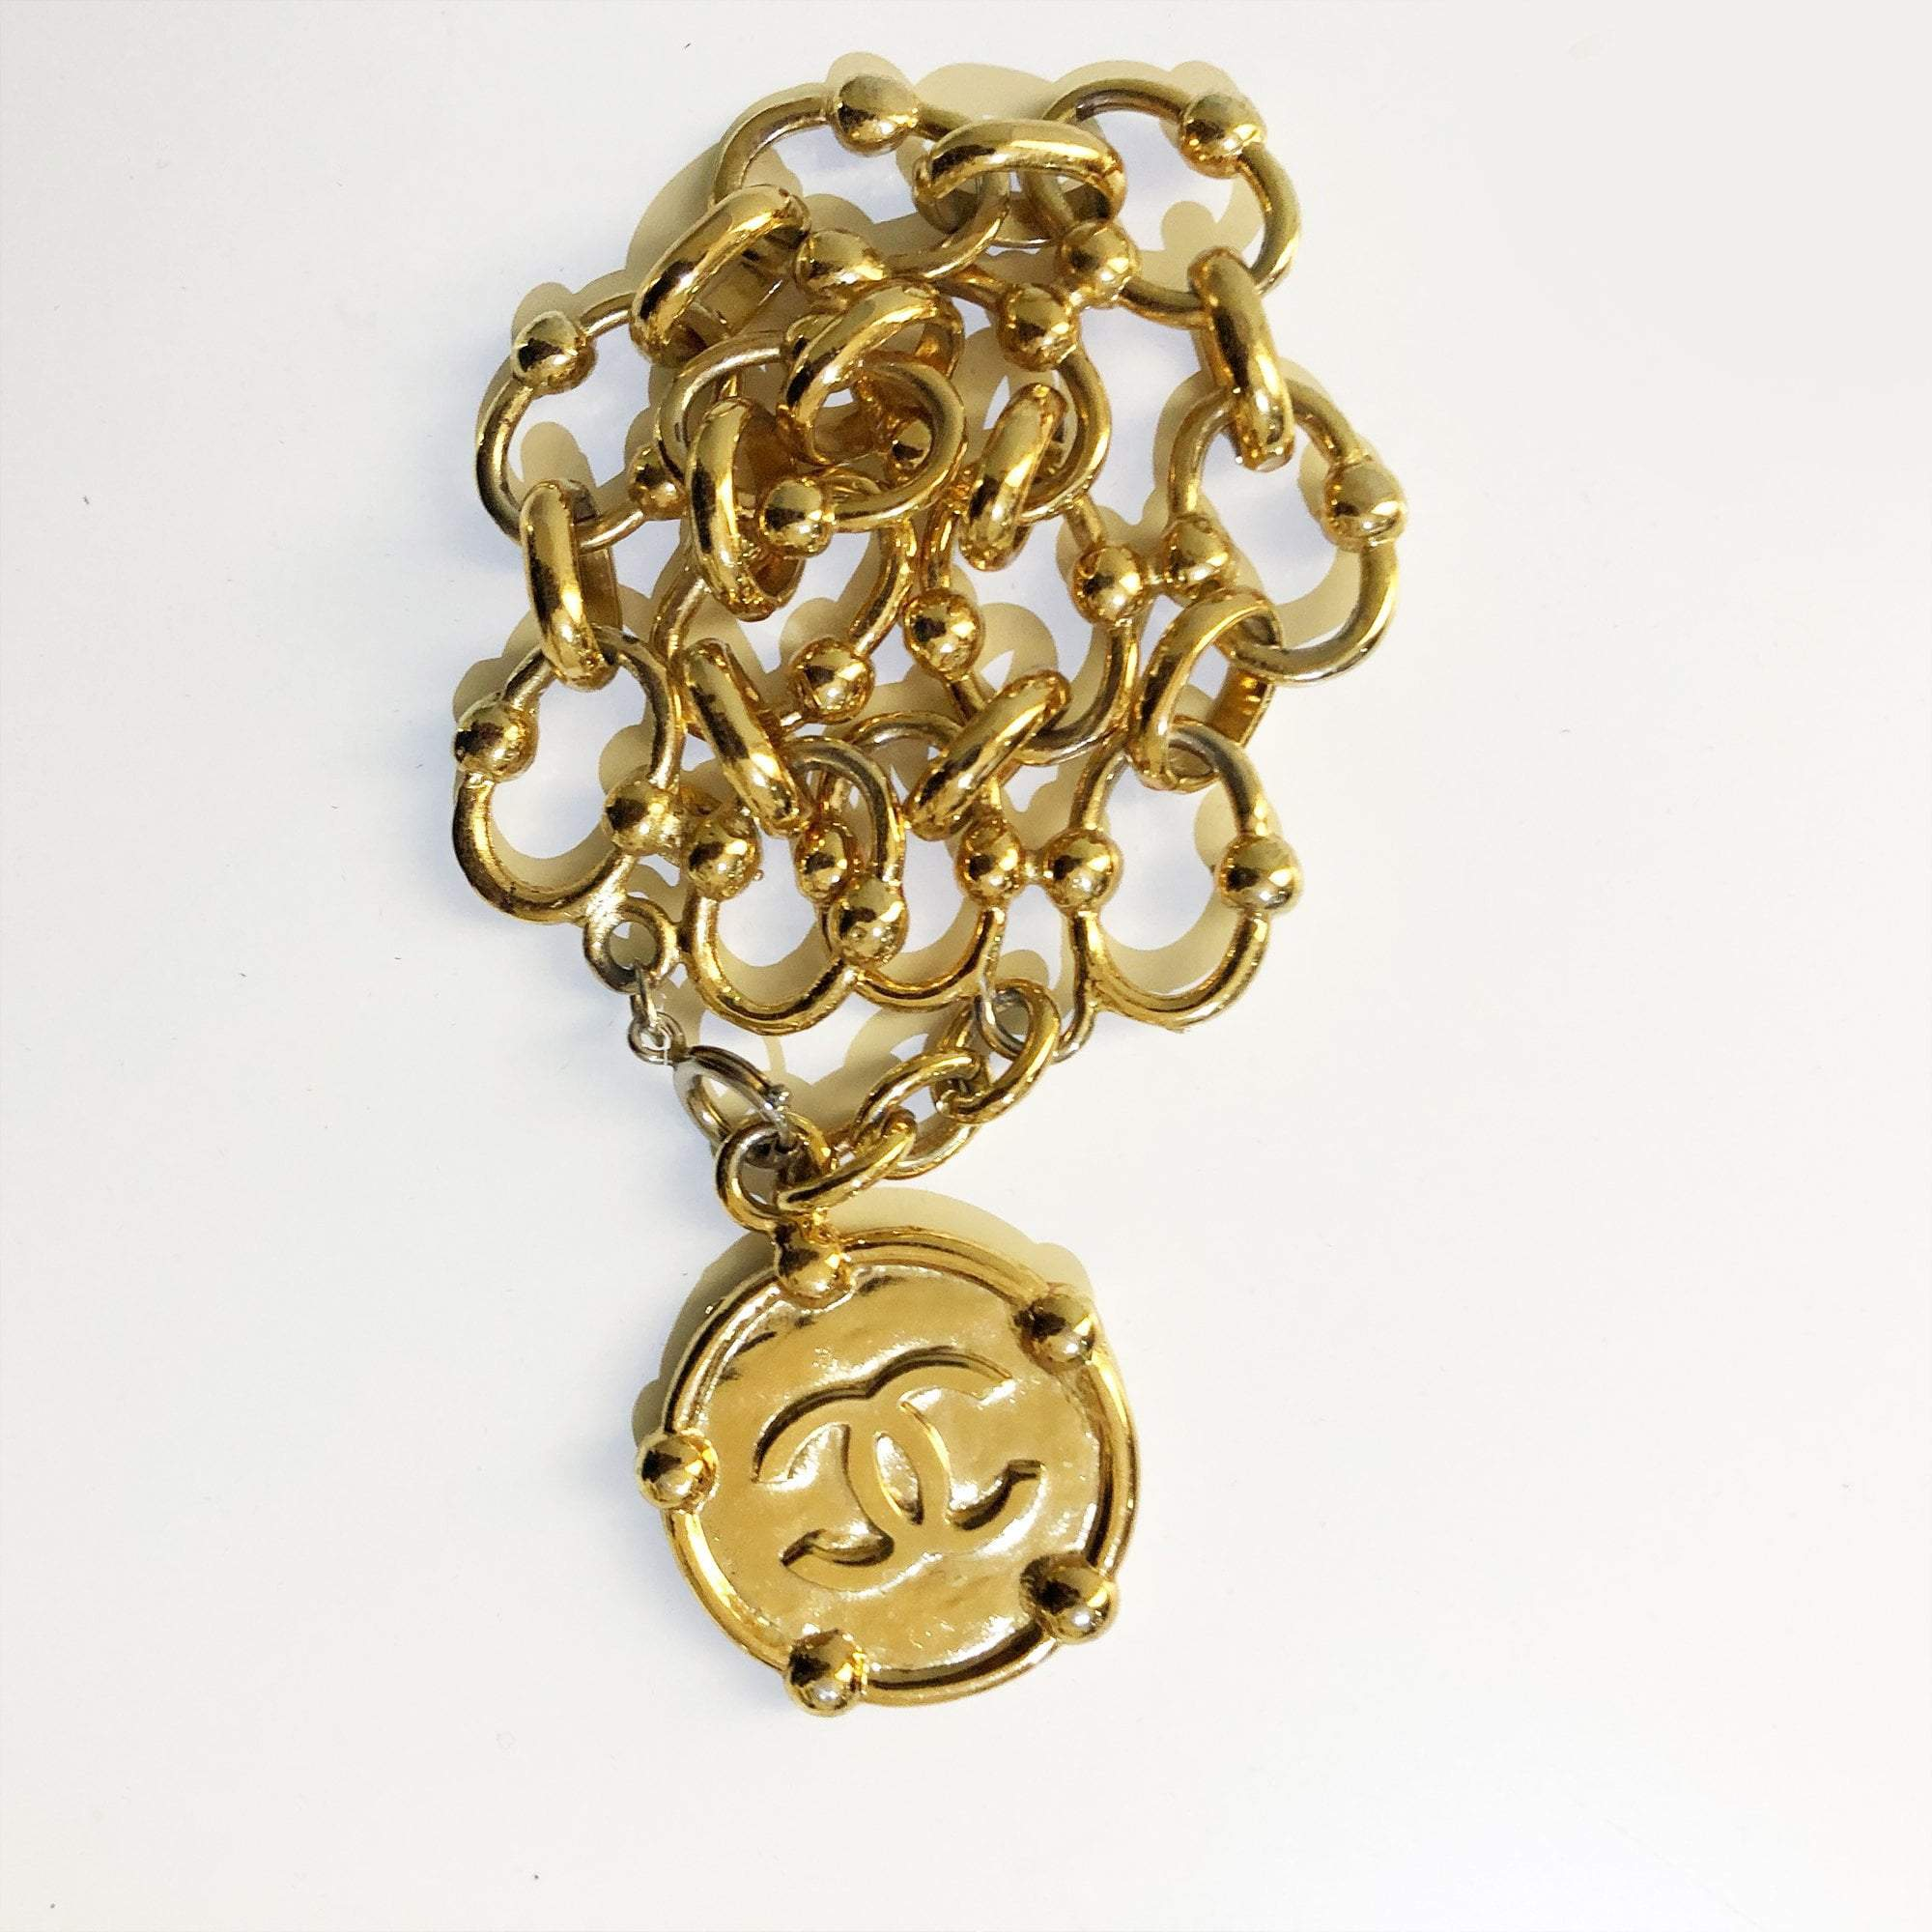 Chanel Vintage Bracelet with CC Coin